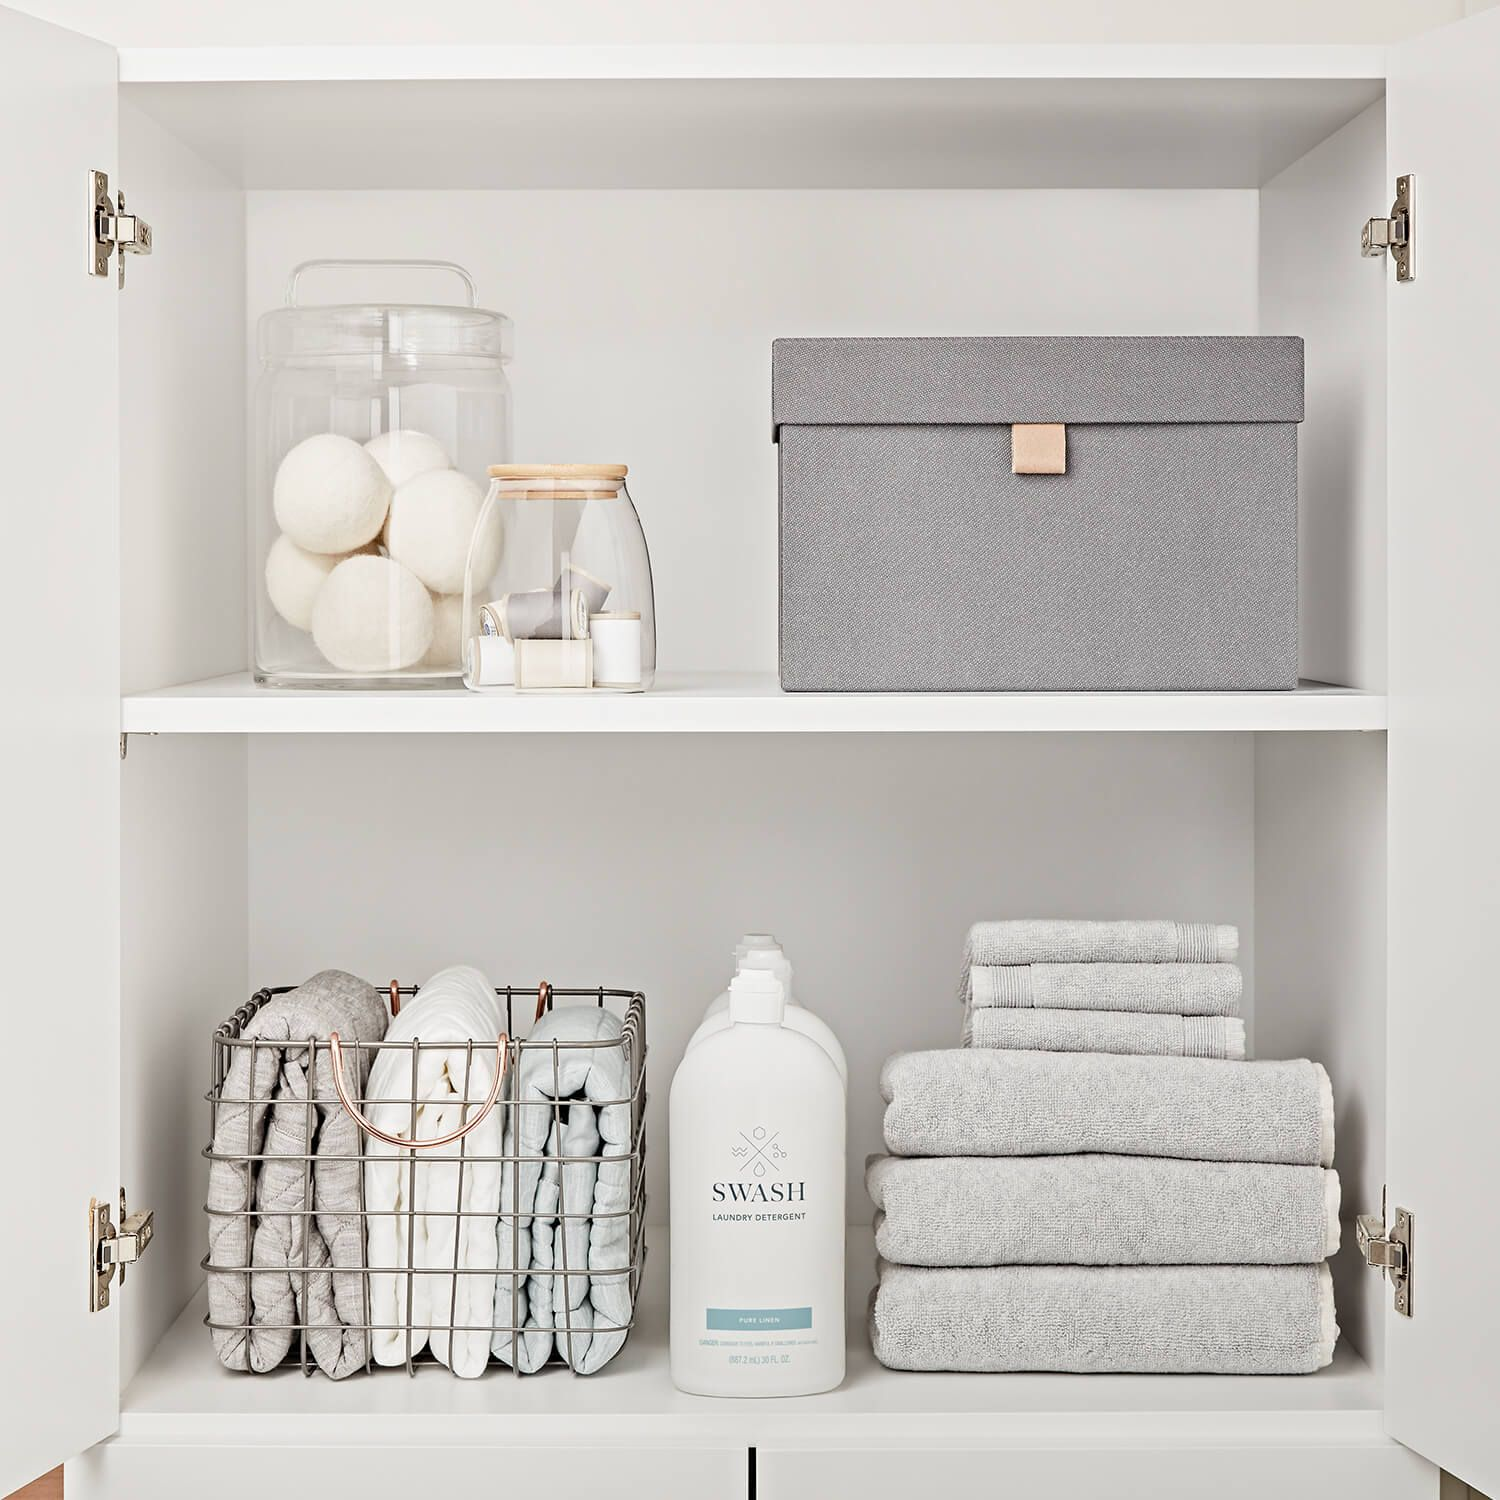 A neatly organized cabinet inside of a laundry room with fresh linens and Swash laundry detergent.